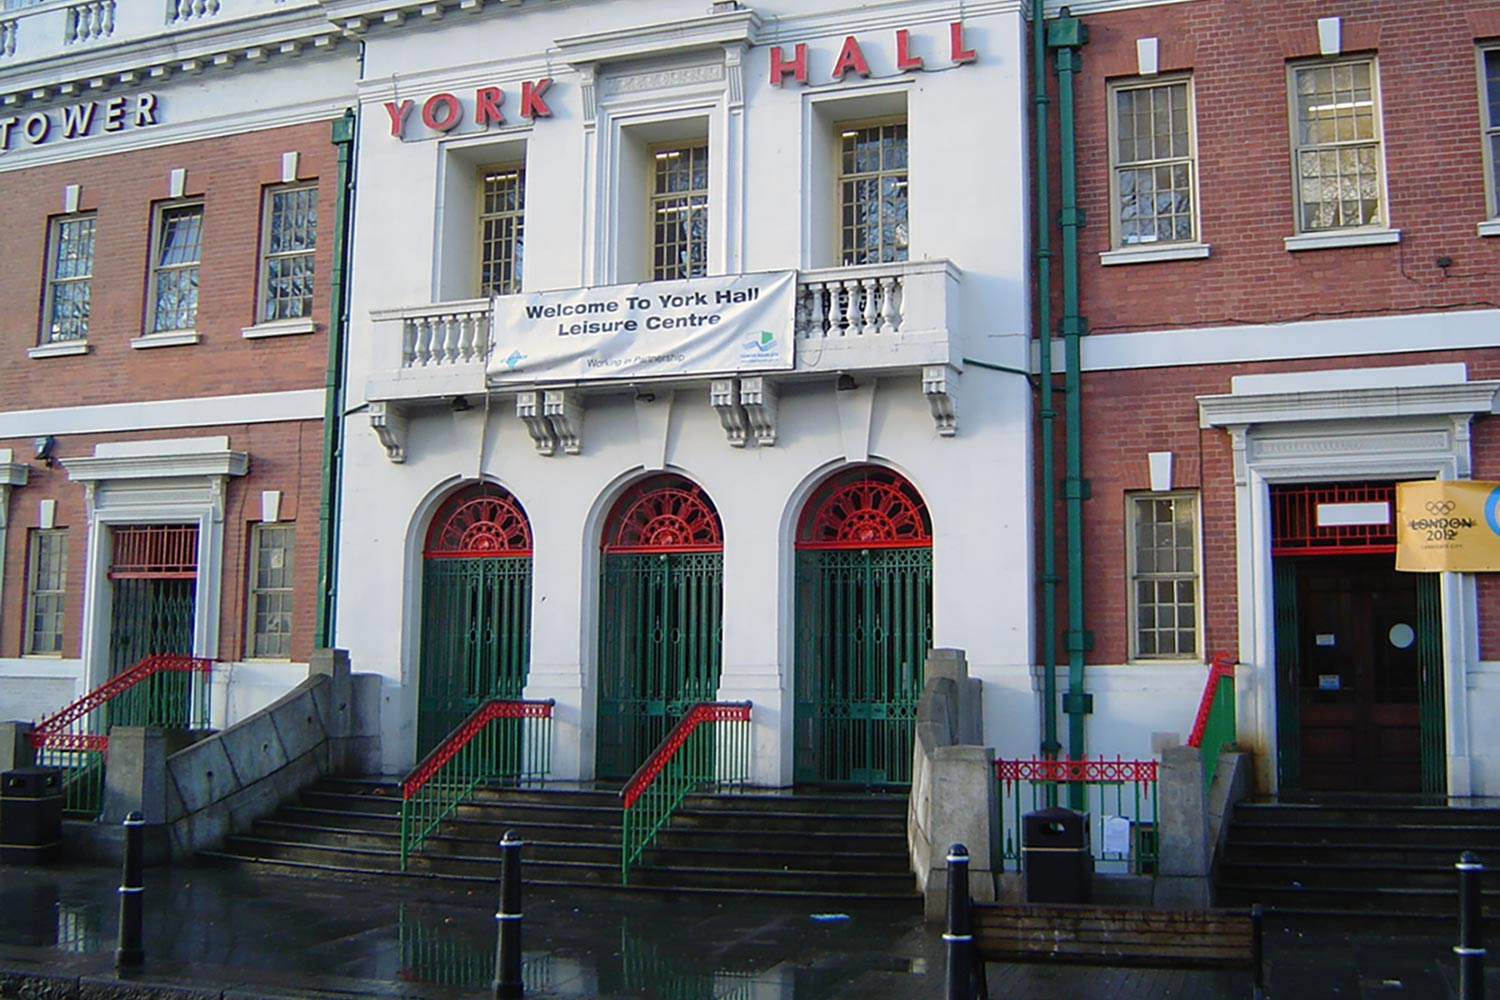 Photograph of York Hall Leisure Centre where the London Jobs Fair will be held